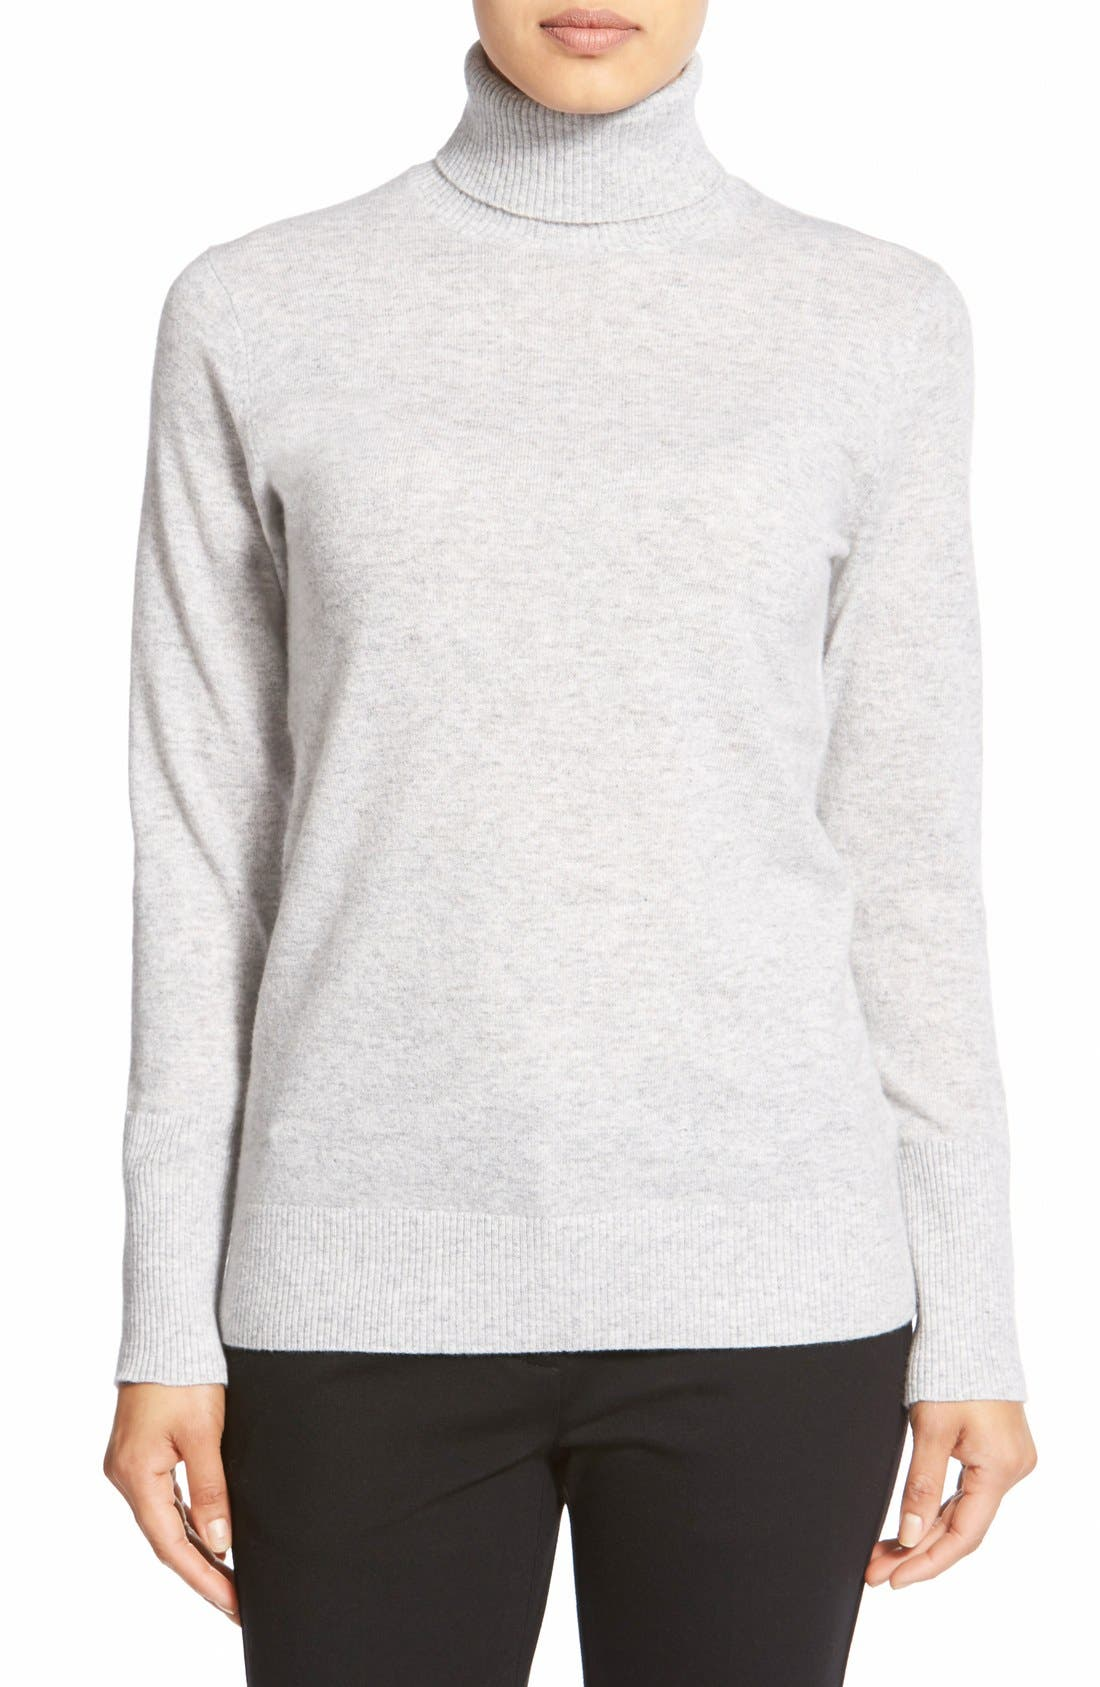 Main Image - Nordstrom Collection Cashmere Turtleneck Sweater